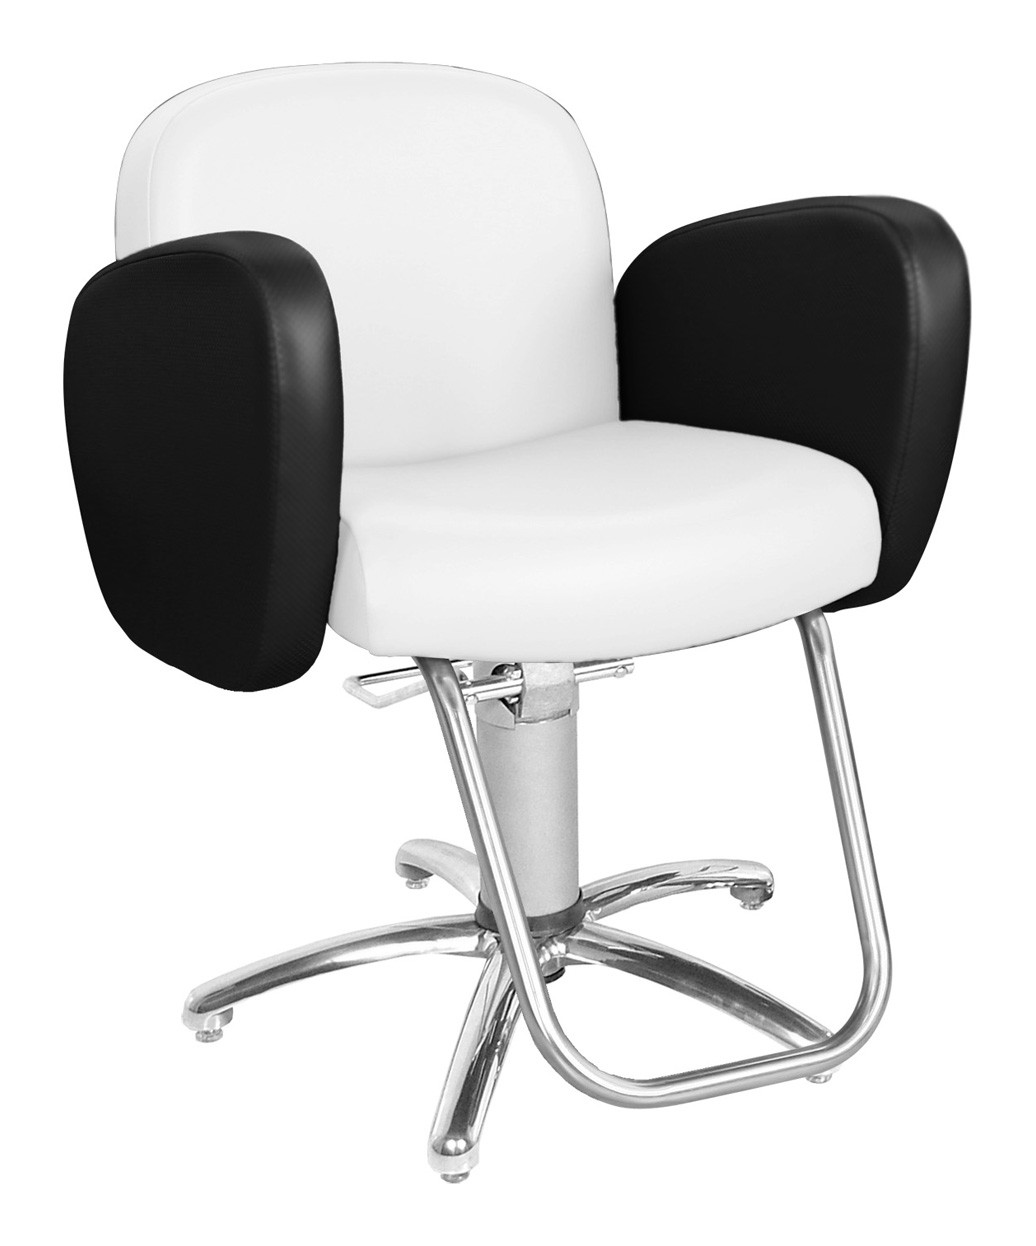 7200S ATL Styling Chair with Slim-Star Base